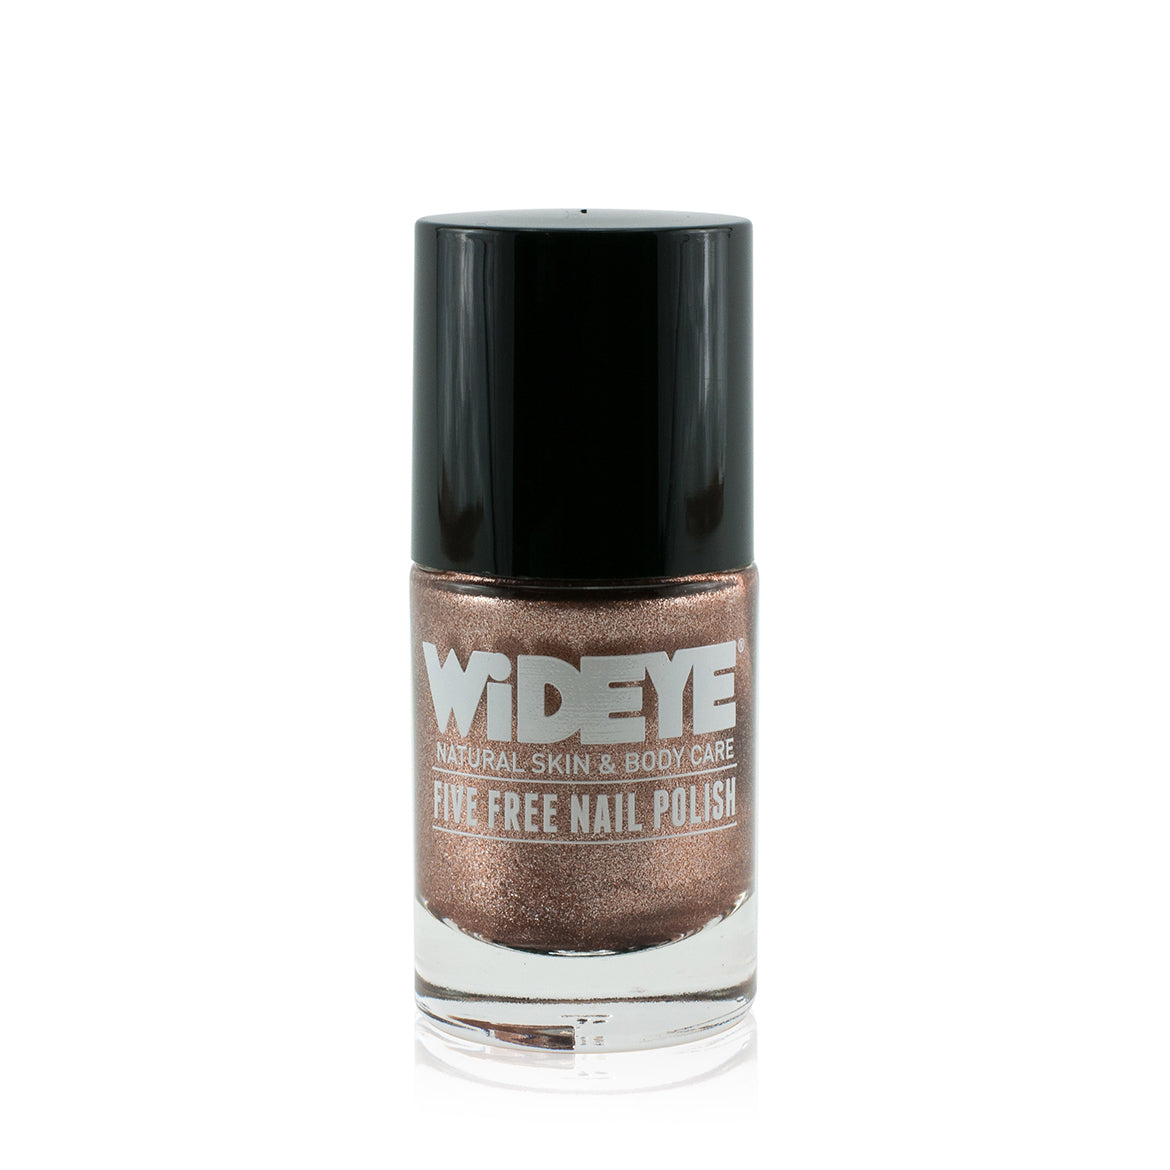 Bronze shimmer nail varnish in glass bottle by WiDEYE.